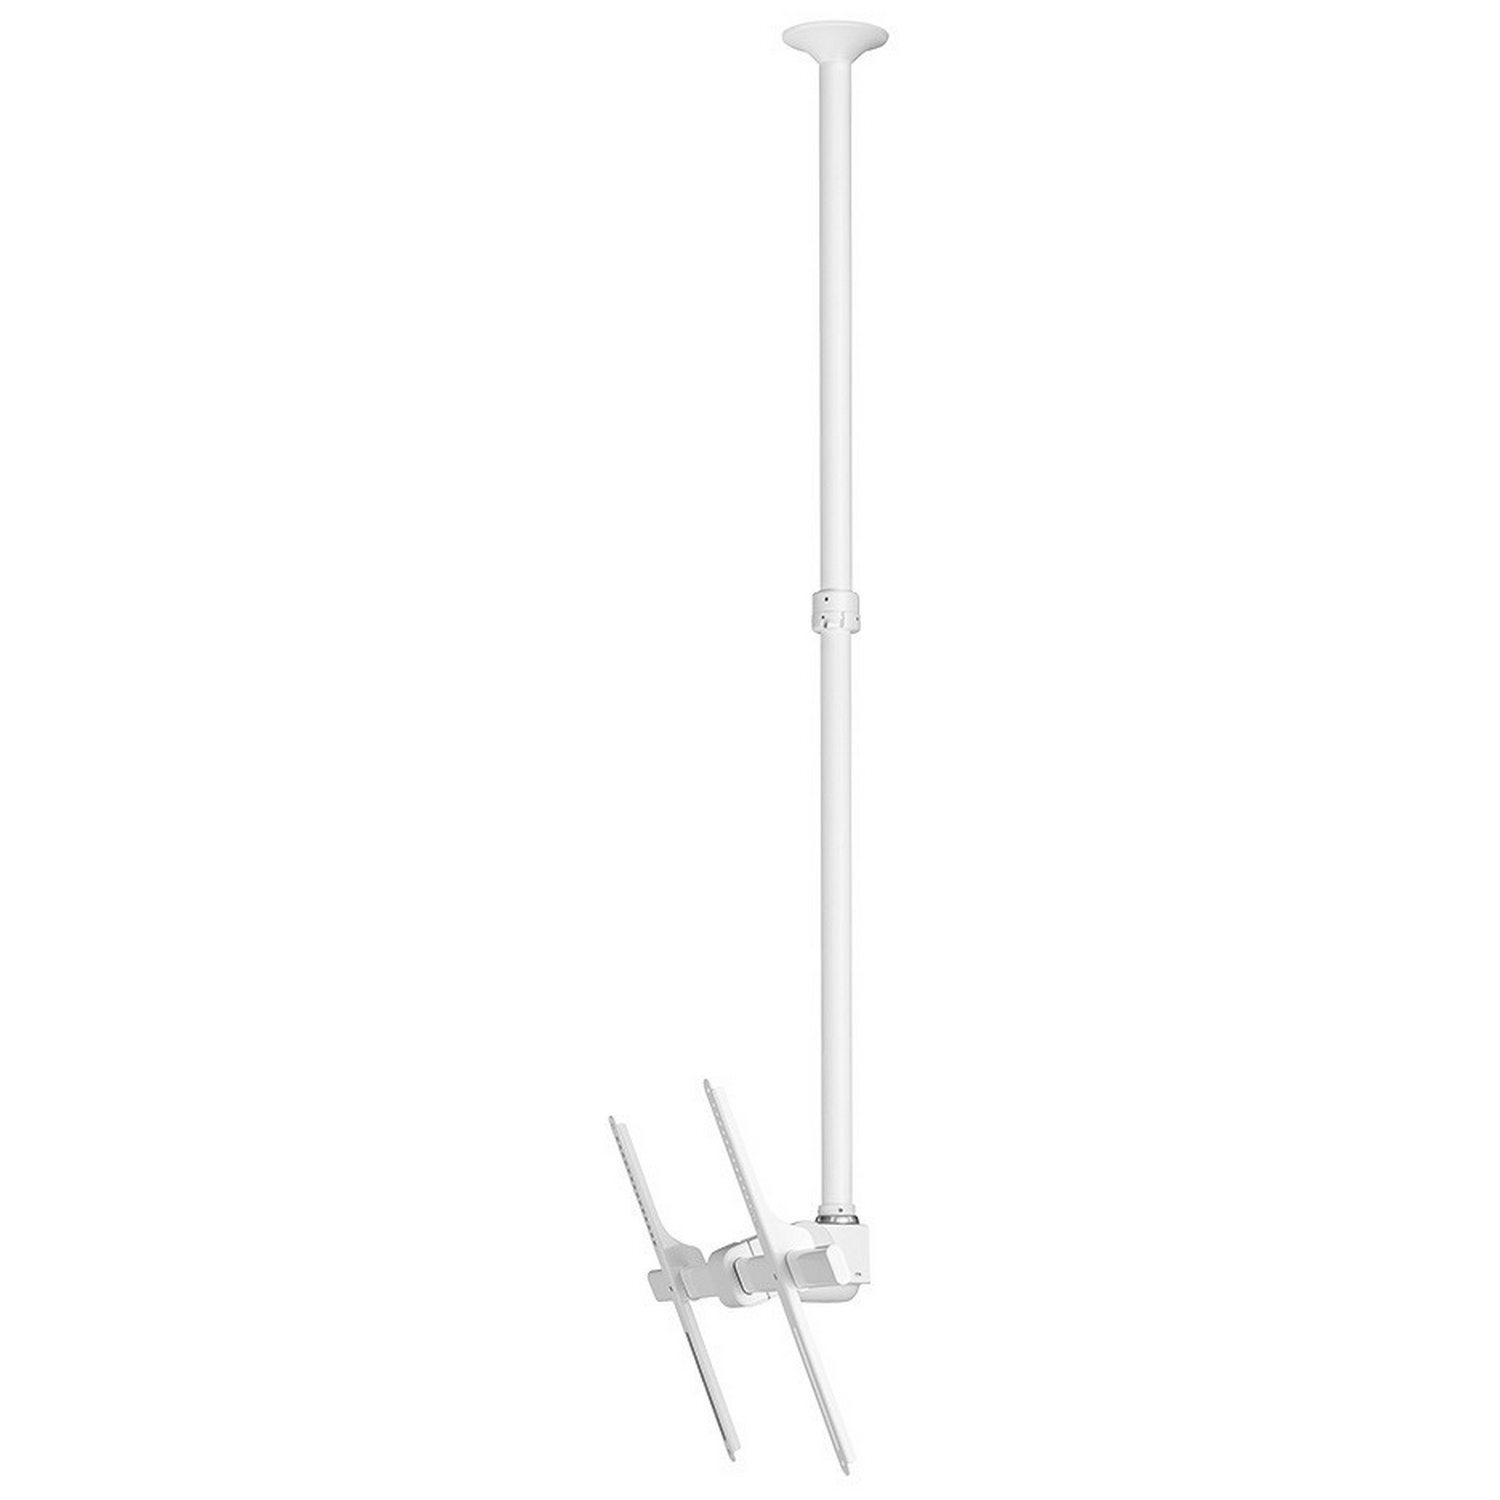 Telehook TH-3070-CTLW